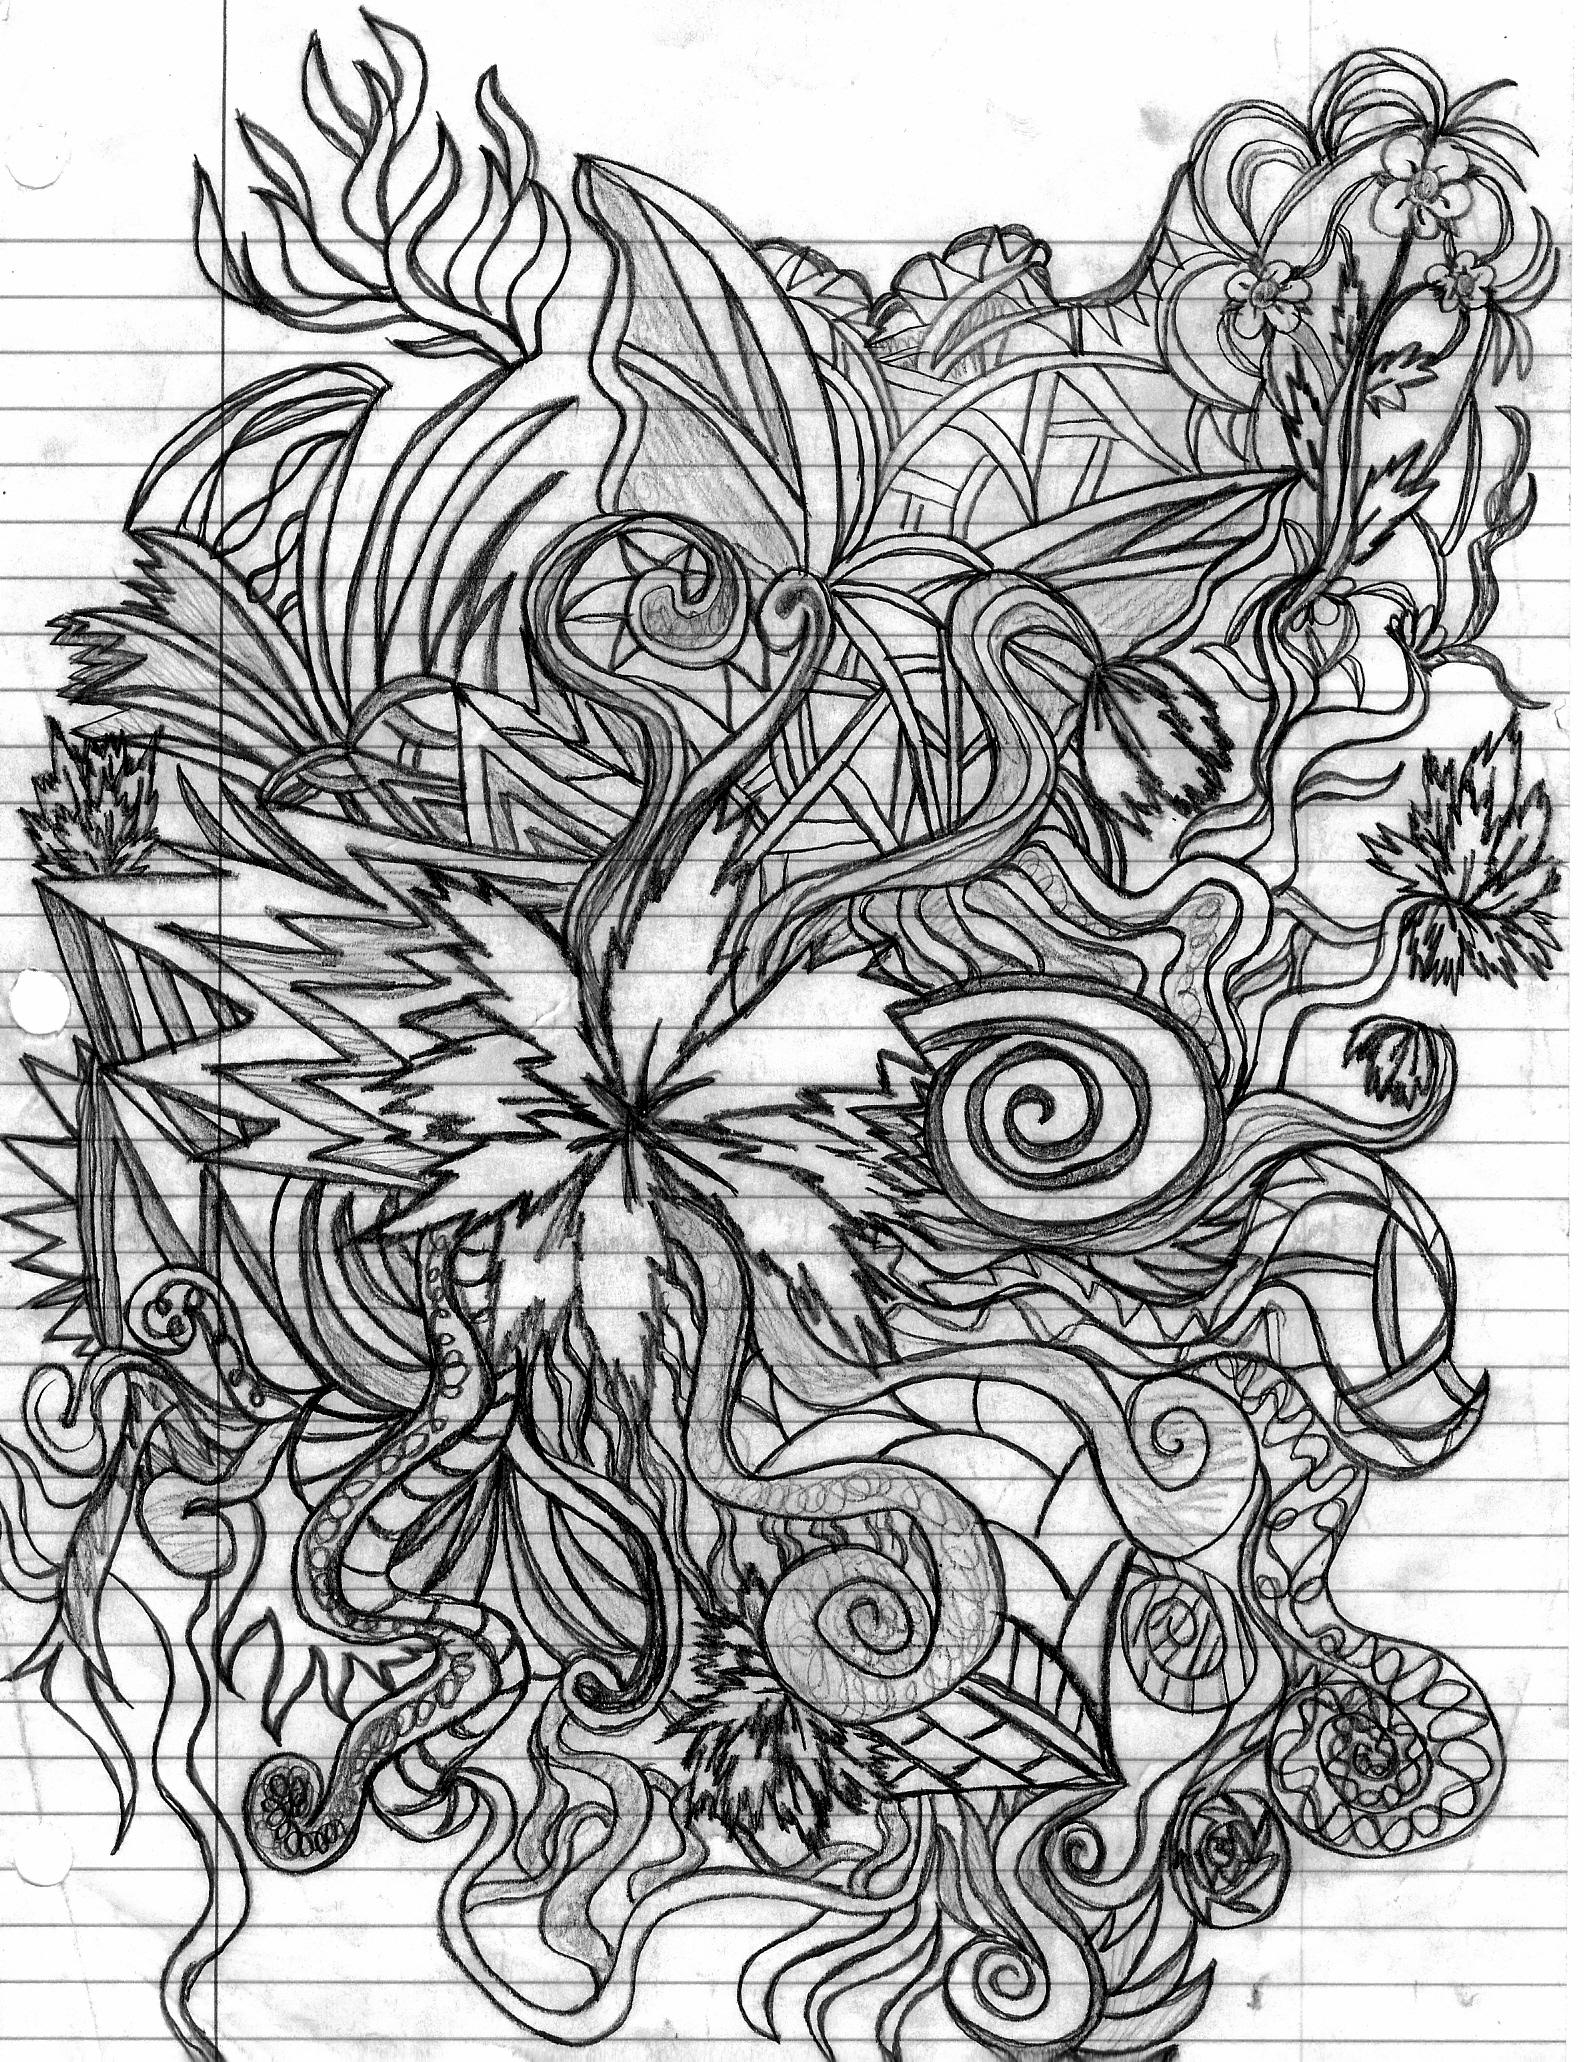 Abstract Line Drawing Flowers : Another abstract flower by darkness dark on deviantart